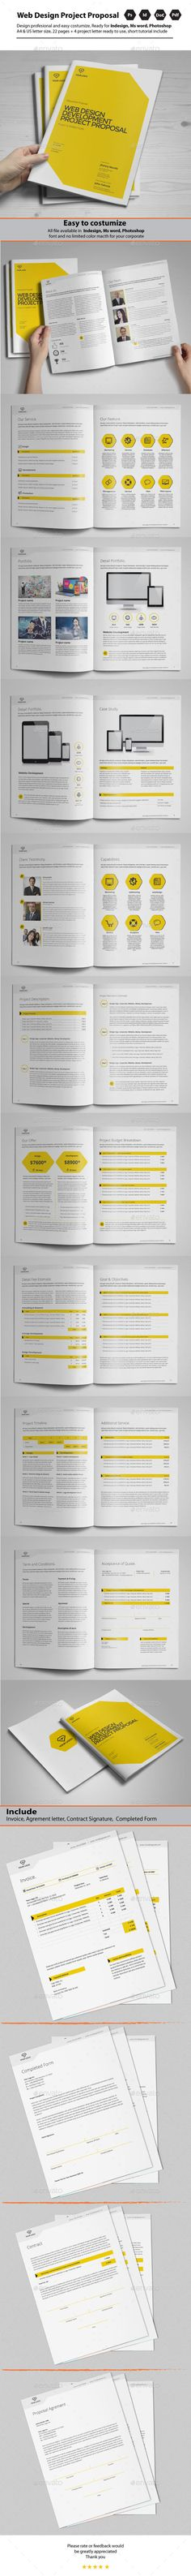 Indesign Business Proposal Template Template Pinterest - proposal template